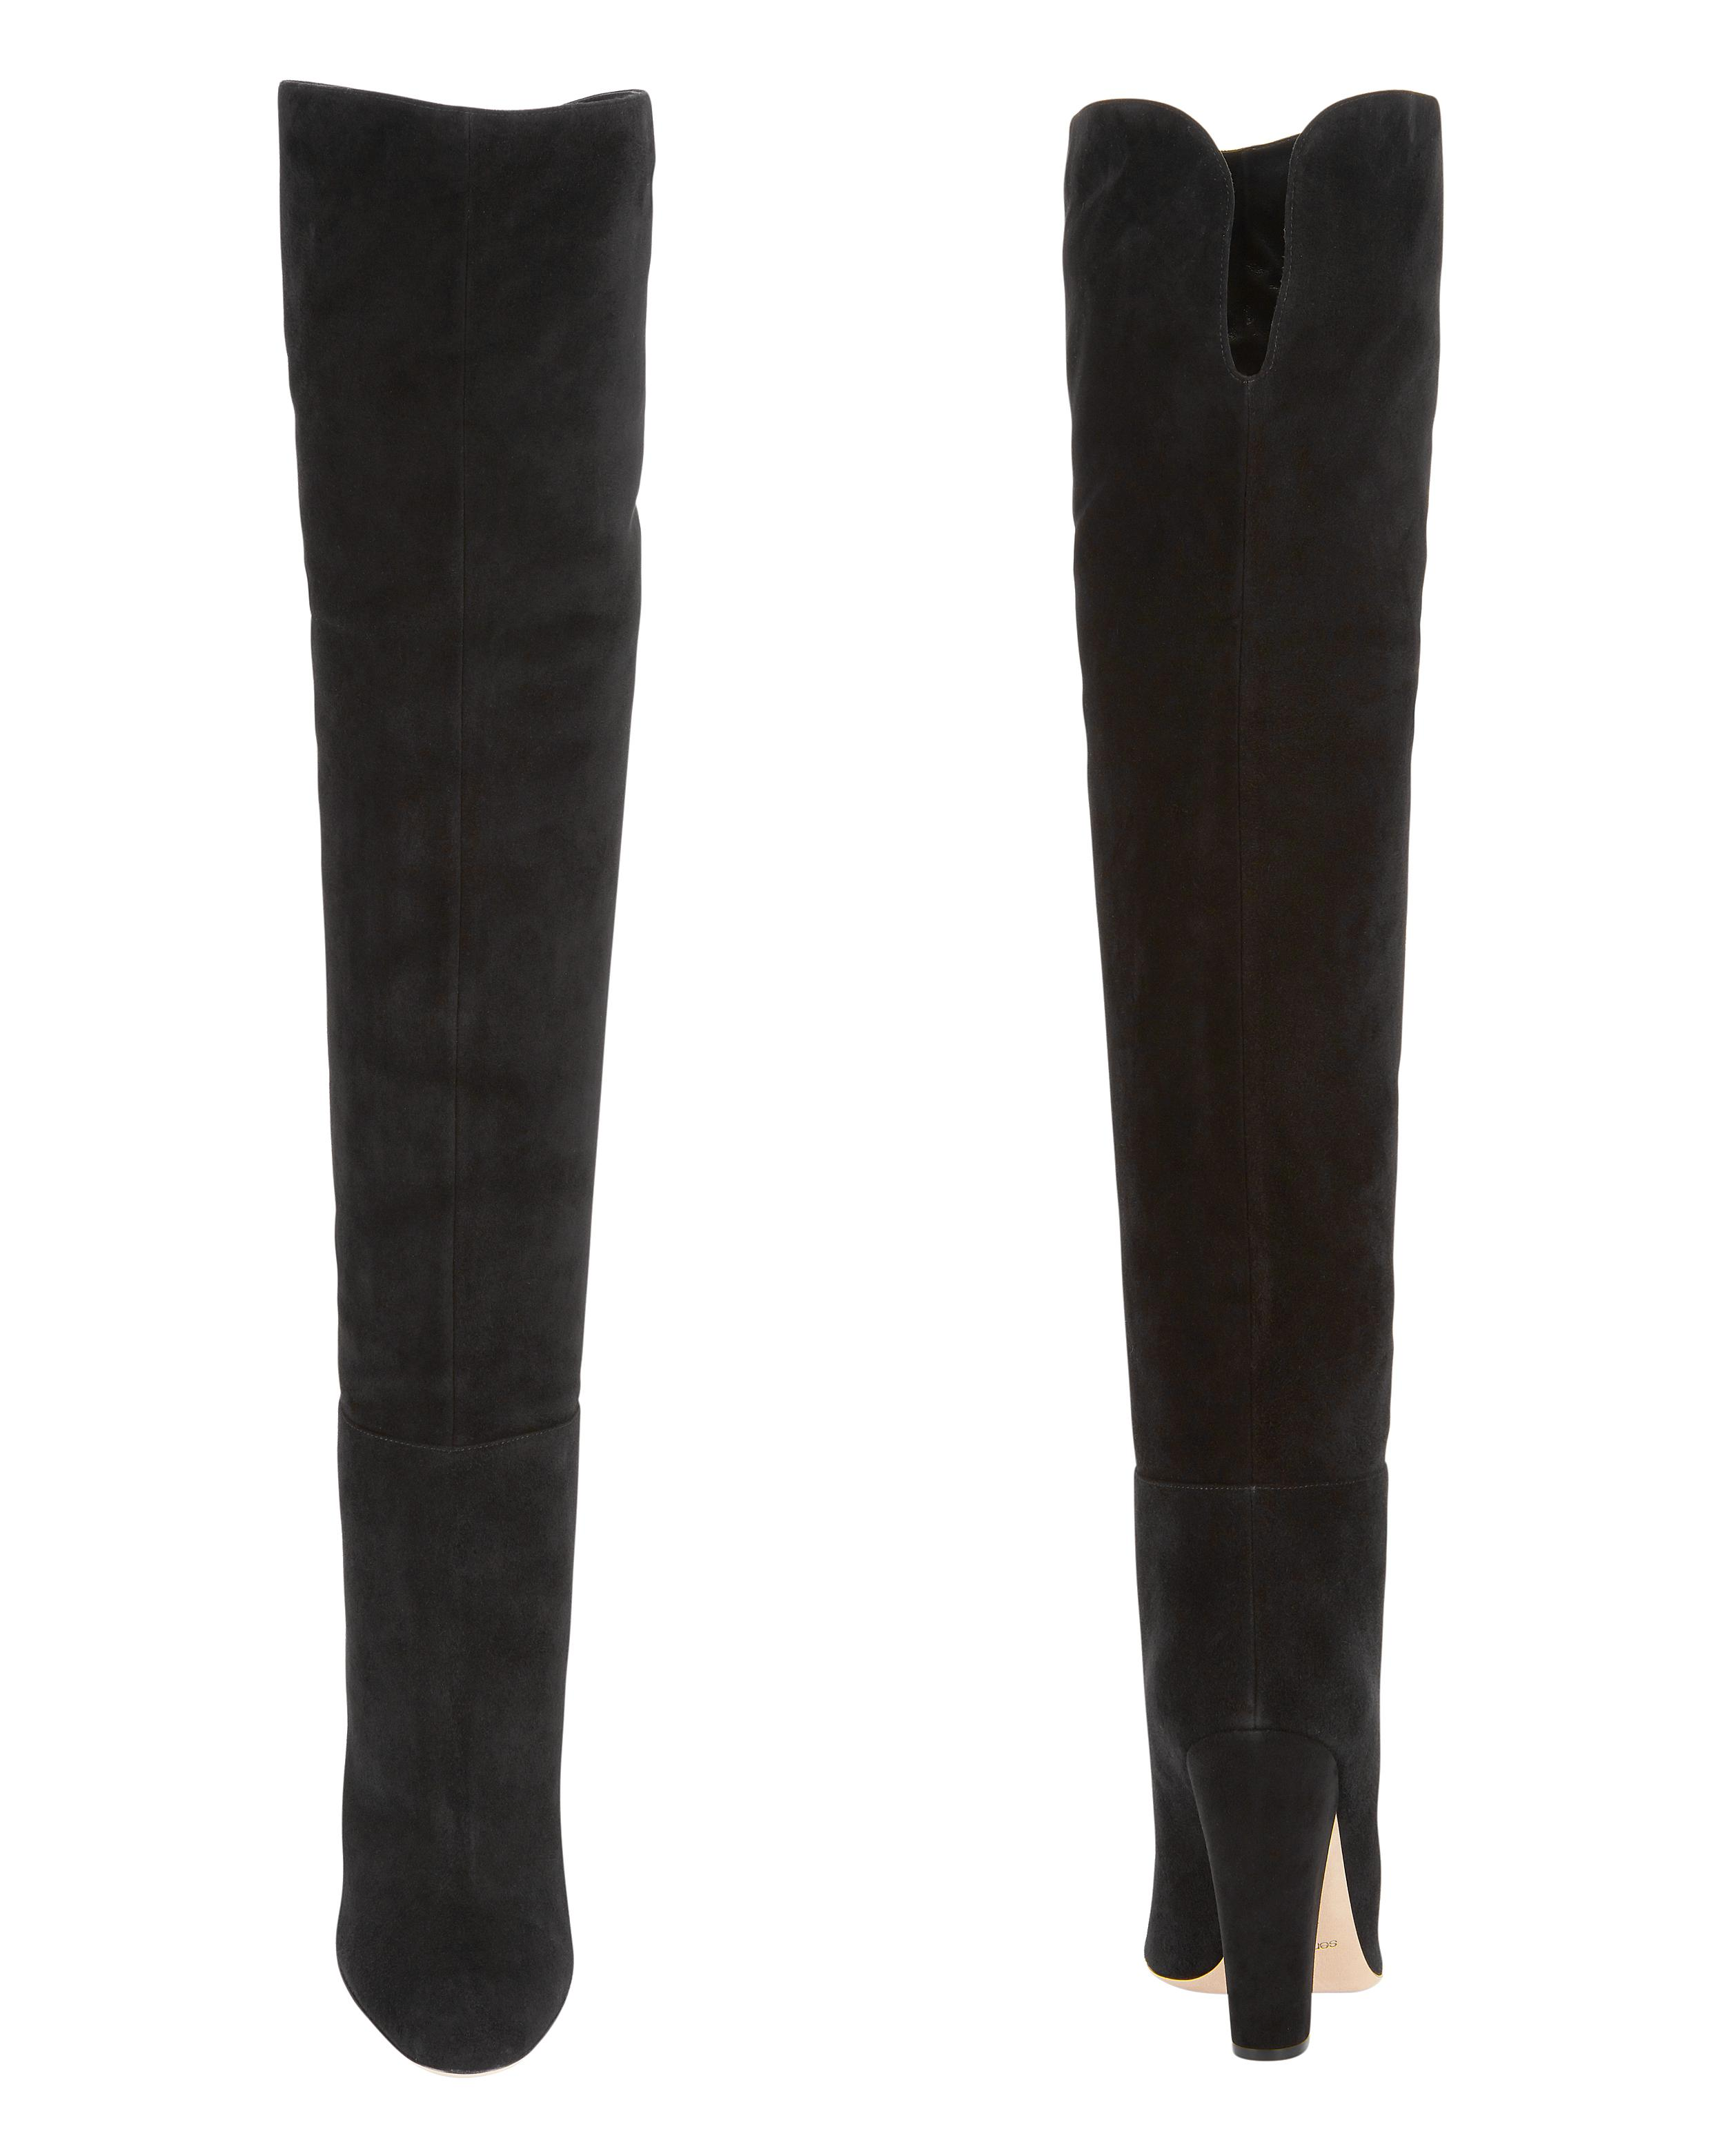 8426d2daaa5 Lyst - Sergio Rossi Virginia Suede Over-the-knee Boots in Black